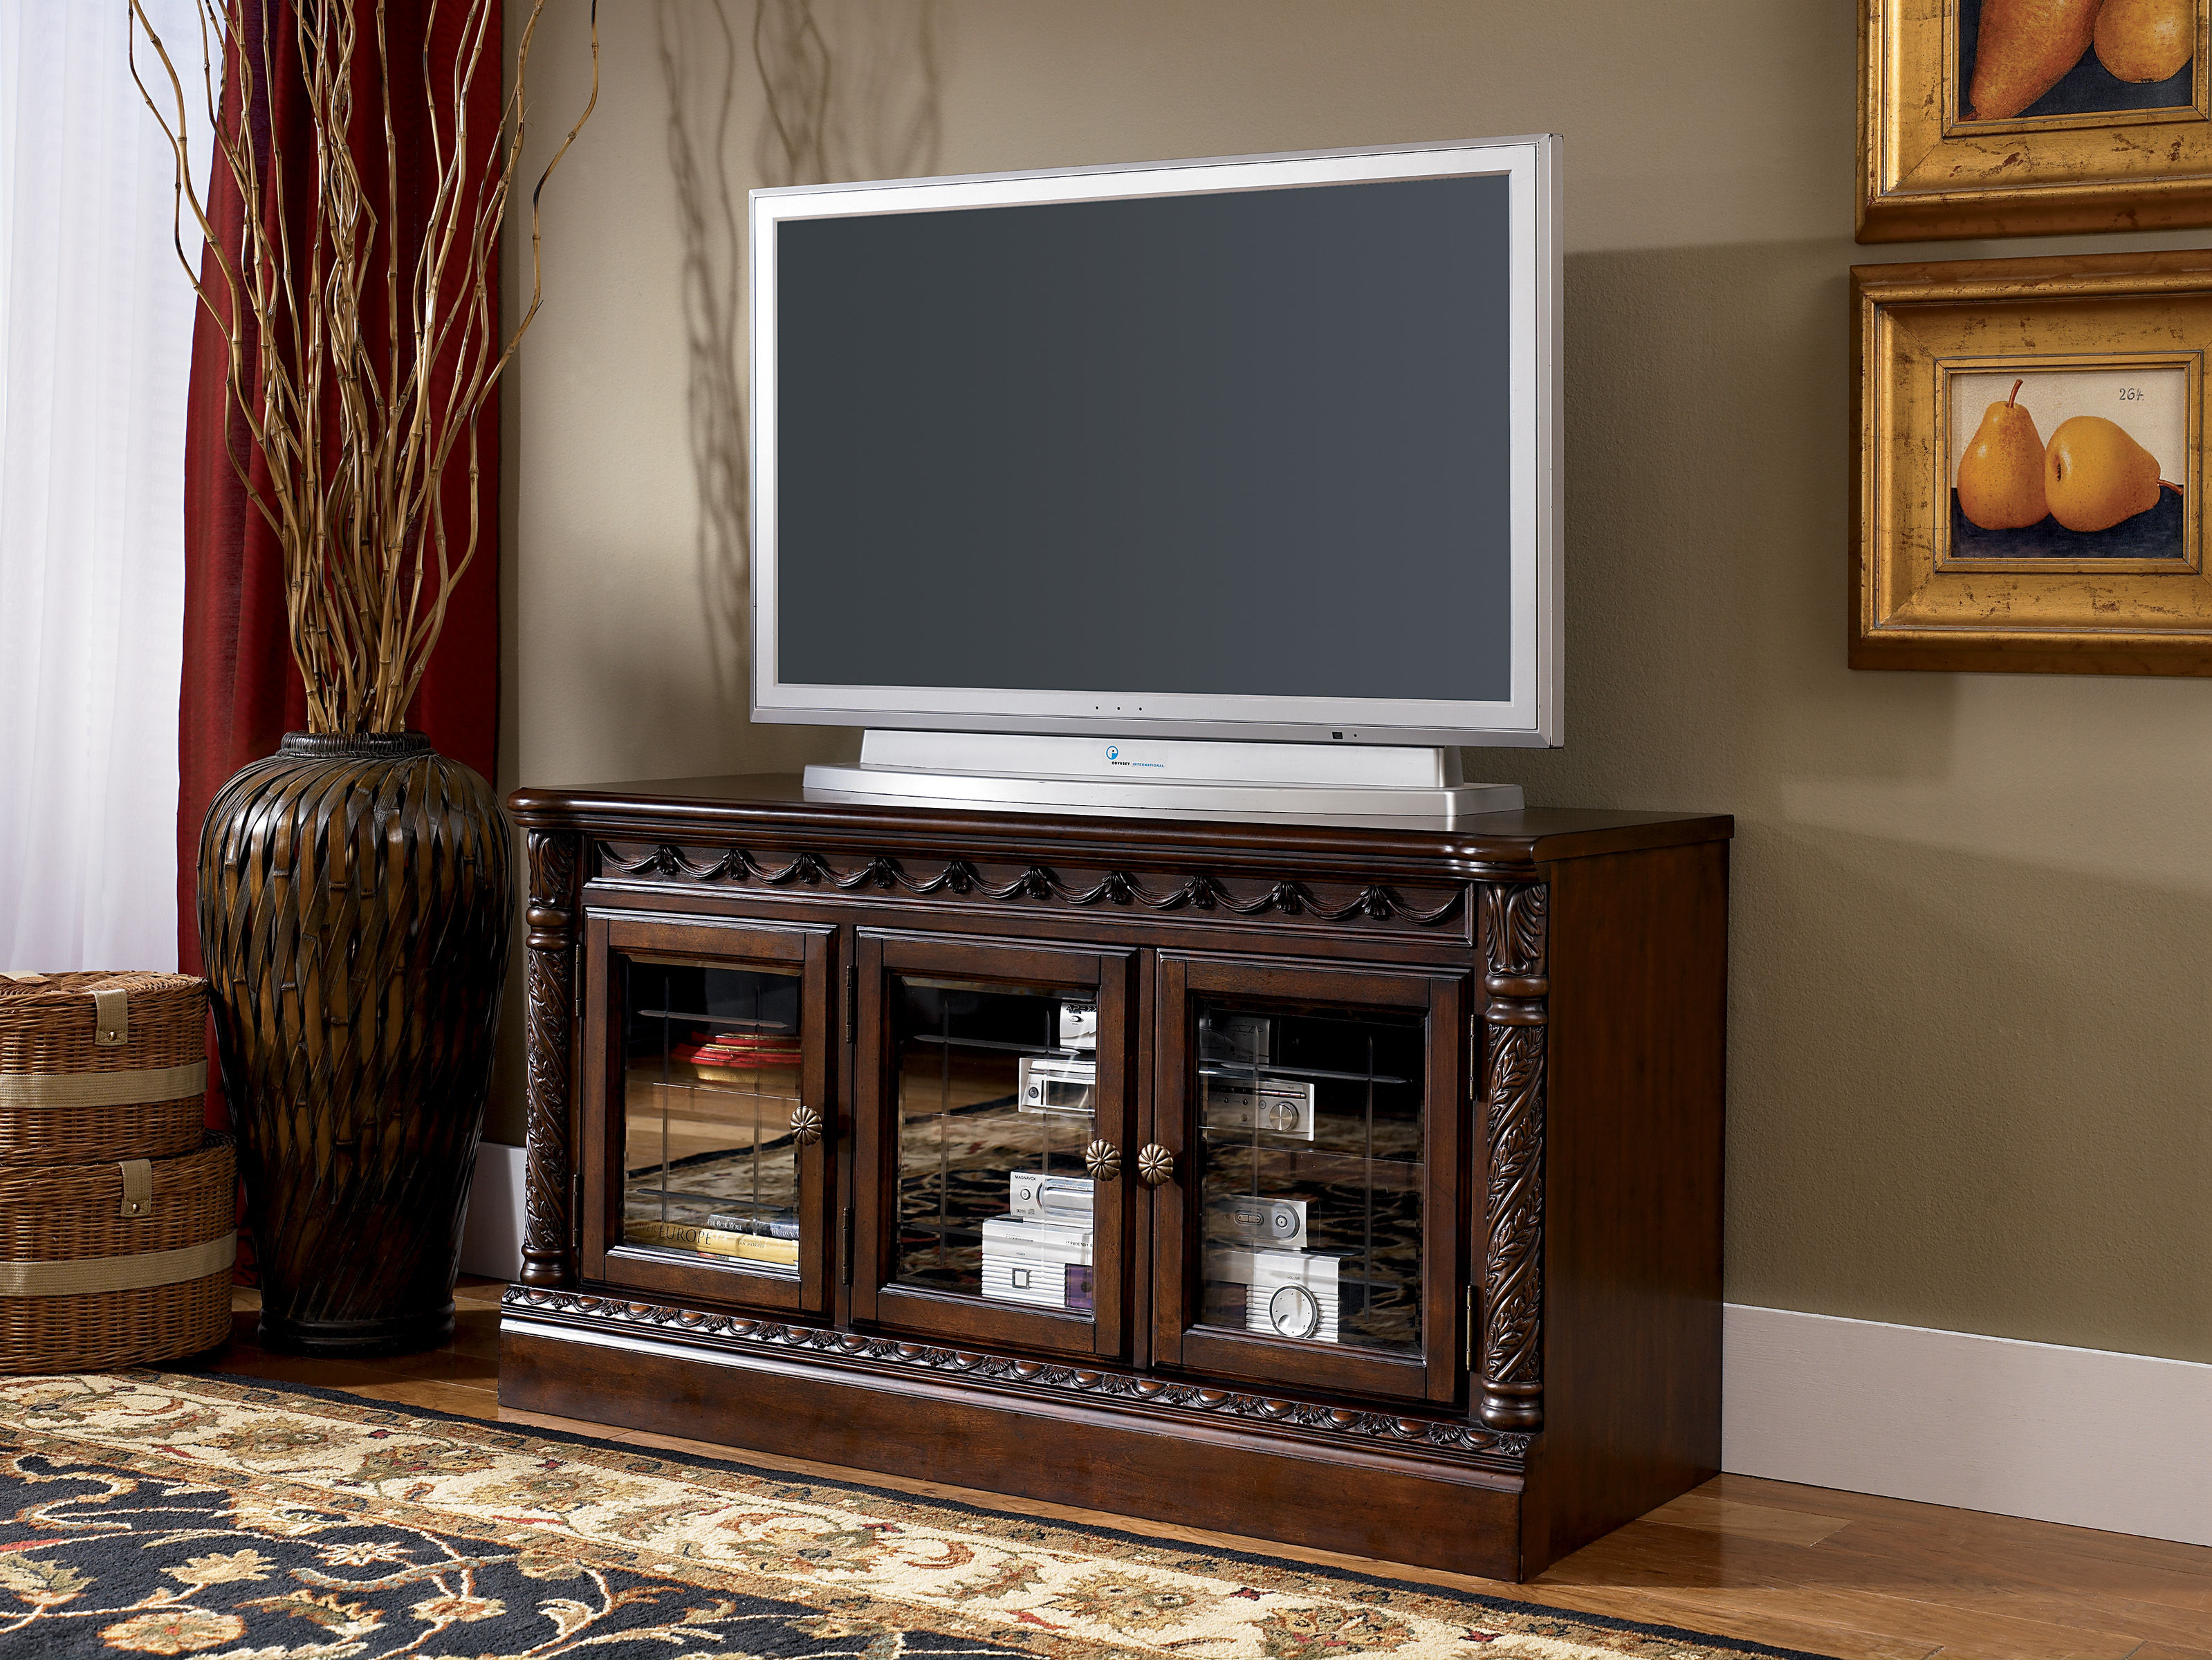 cupboard tv fireplace w product wfireplace oh porter option dealer mentor furniture large best stands stand ashley store